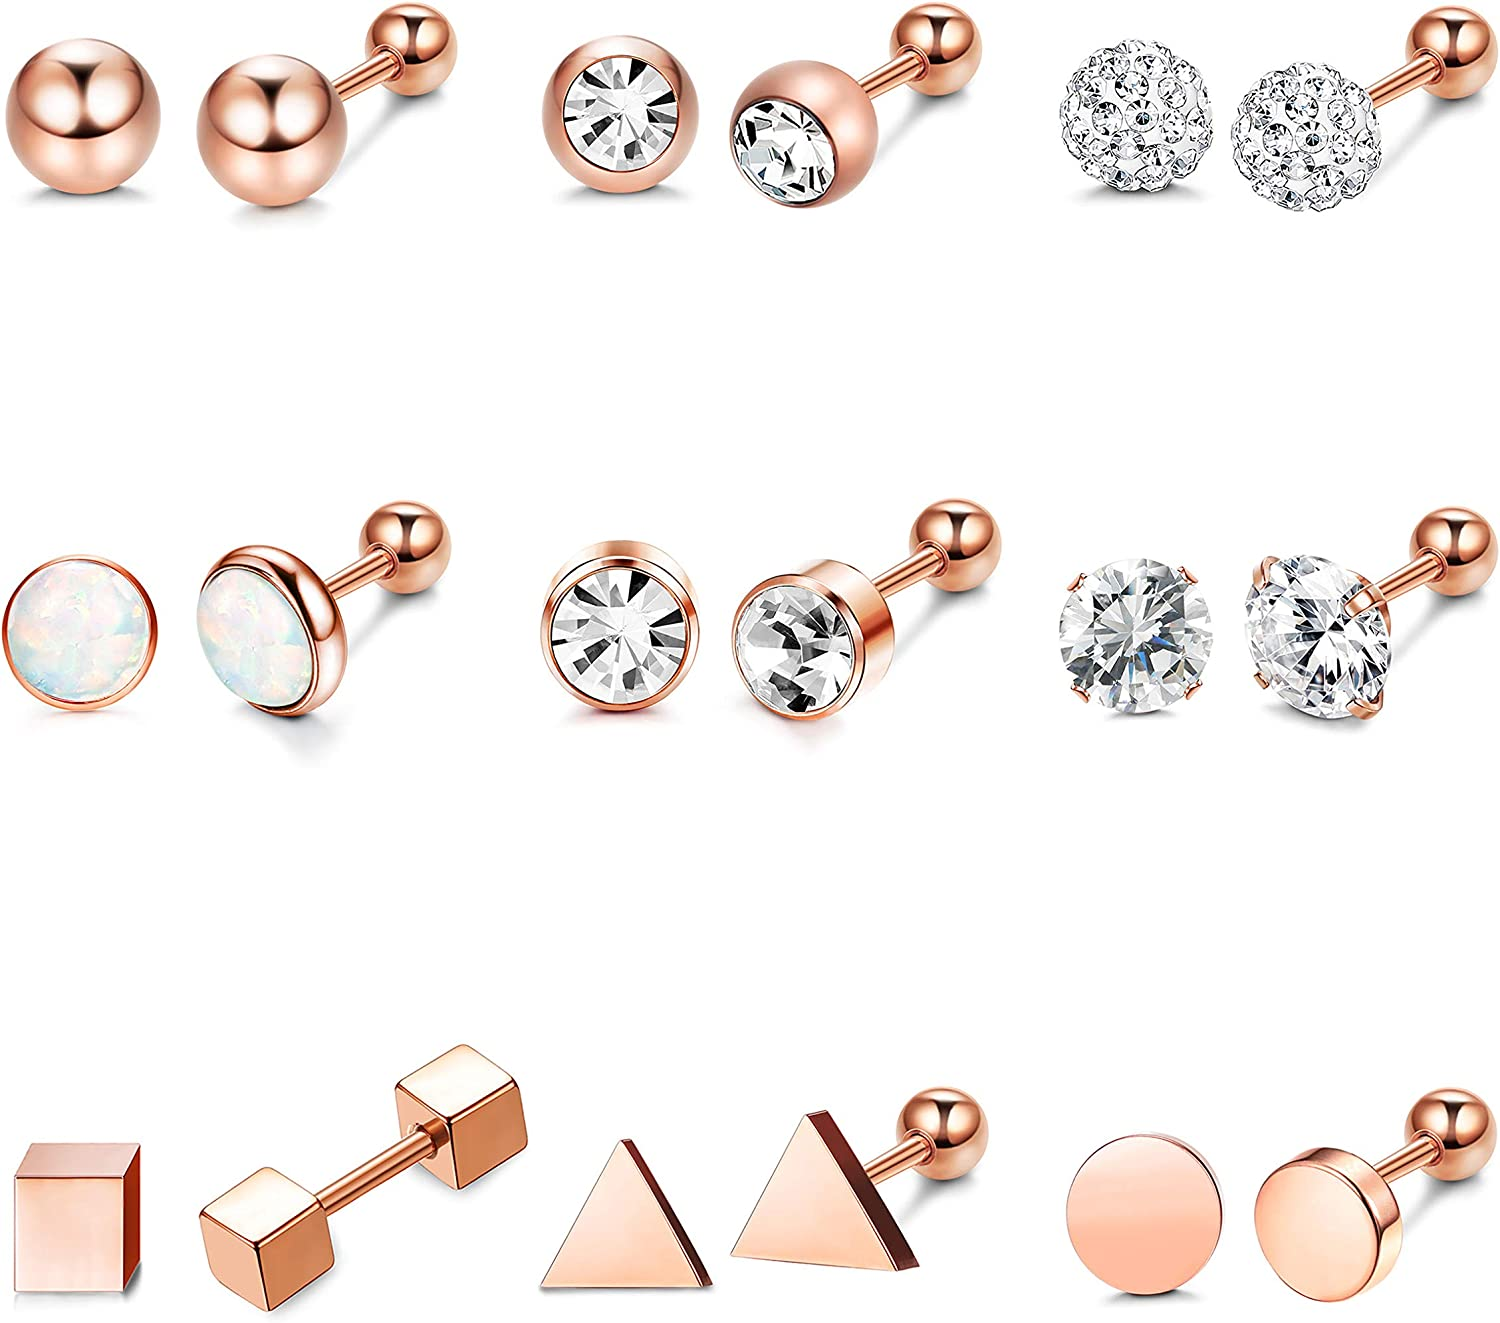 Hanpabum 9 Pairs Stainless Steel Ball Stud Earrings Barbell CZ Cartilage Helix Ear Piercing Jewelry Set for Men Women